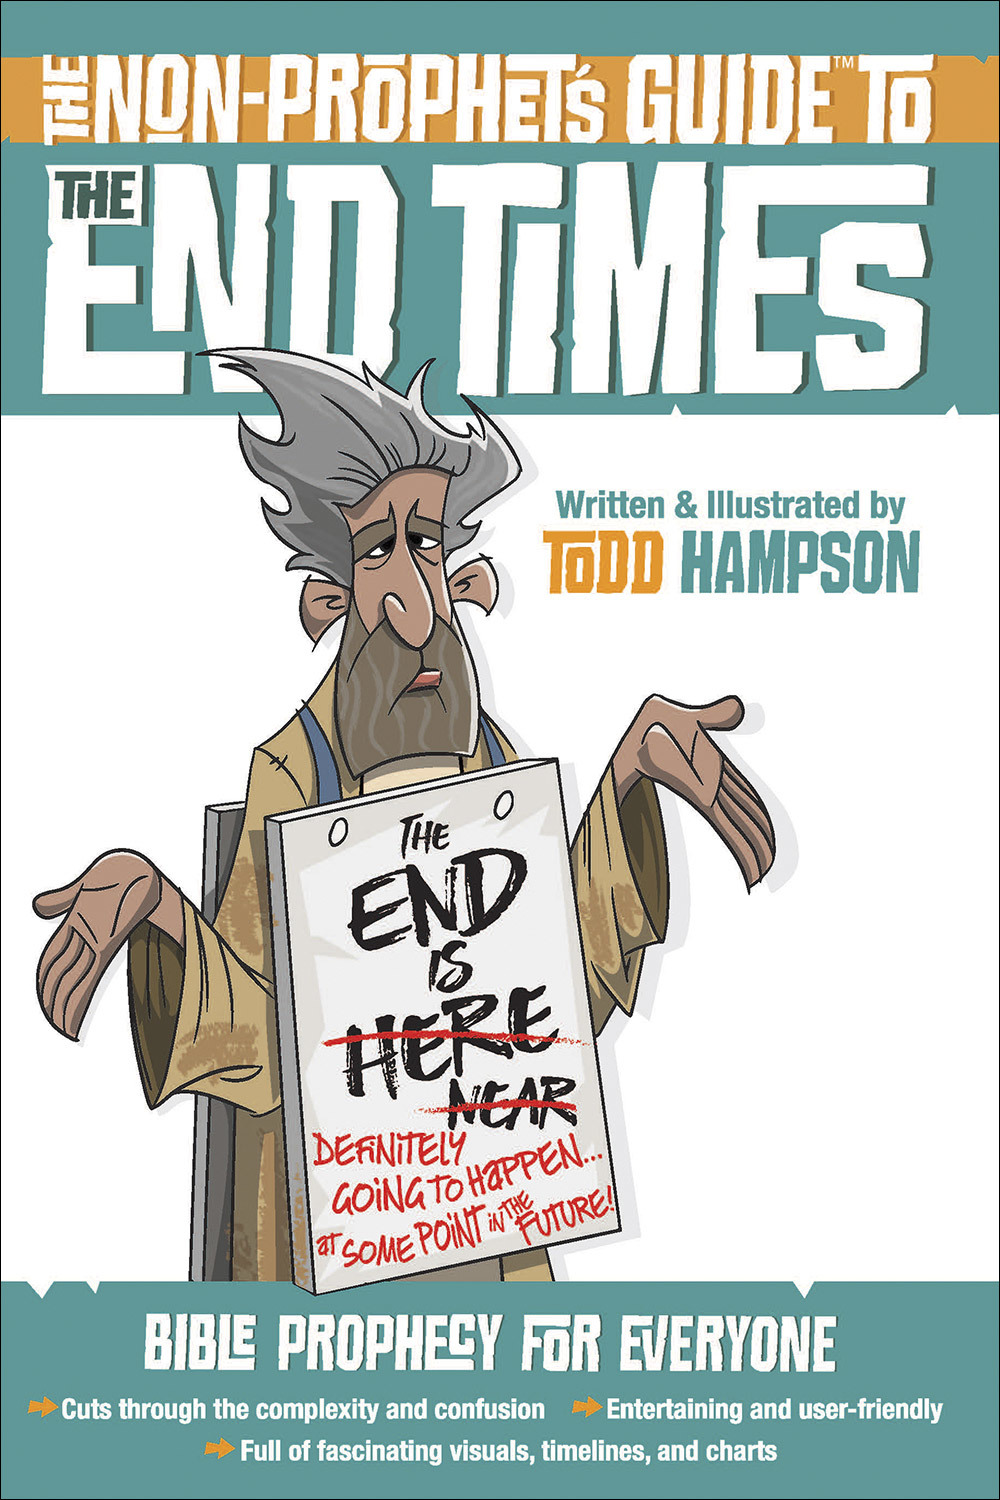 The Non-Prophet's Guide™ to the End Times: Bible Prophecy for Everyone •	Cuts through the complexity and confusion •	Entertaining and user-friendly •	Full of fascinating visuals, timelines, and charts